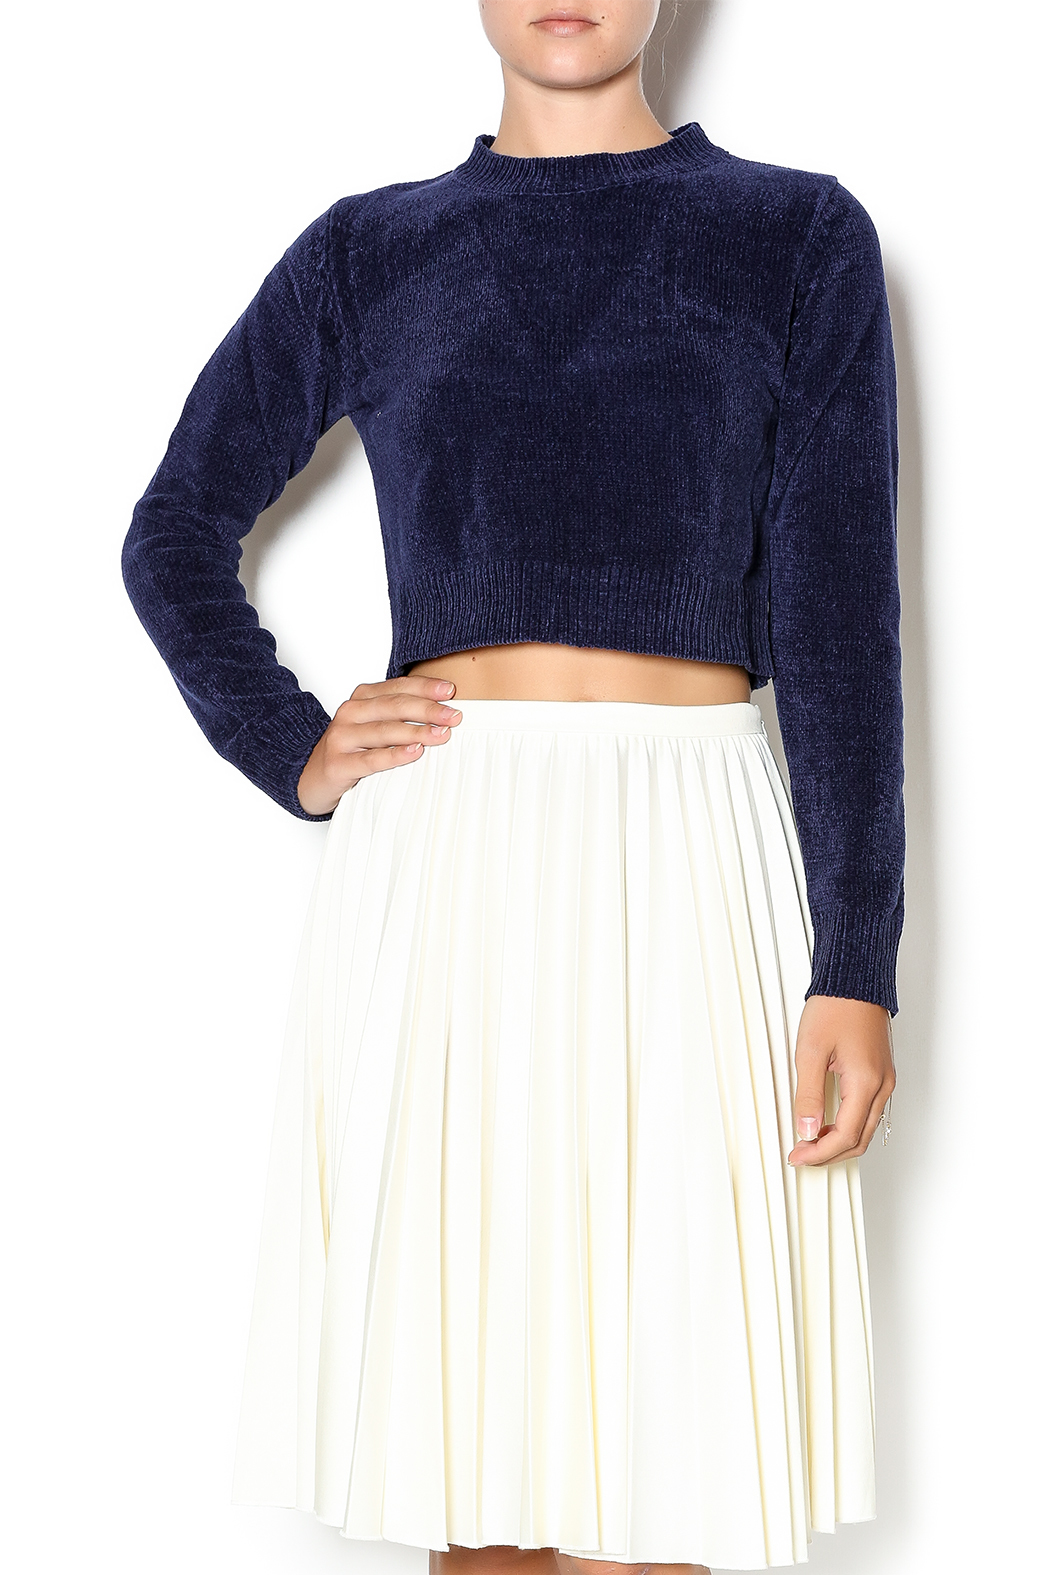 Babel Fair Navy Cropped Sweater from Williamsburg by Babel Fair ...